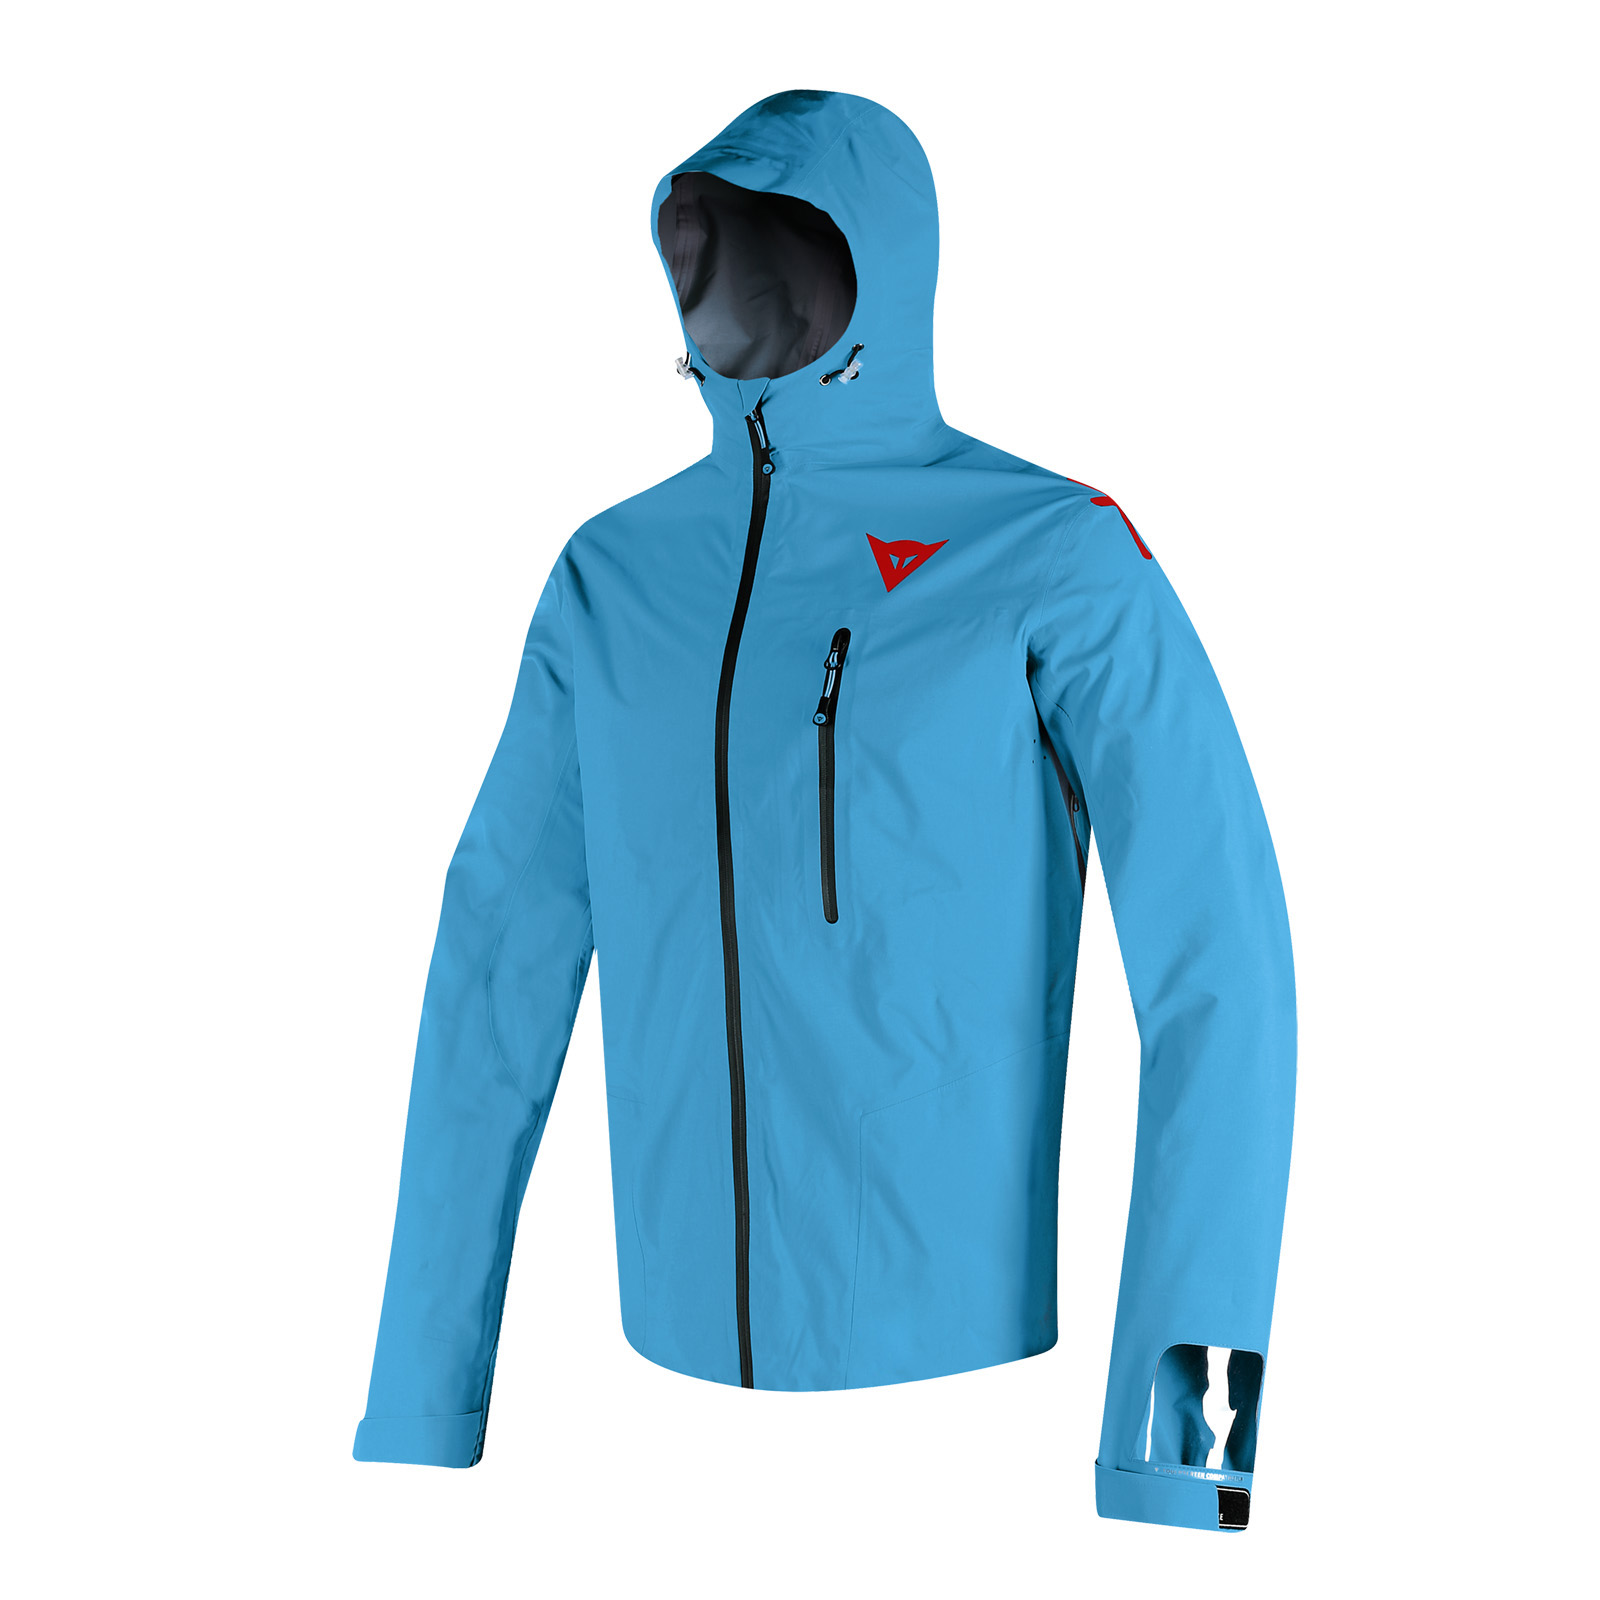 Dainese Atmo Lite 3L Jacket